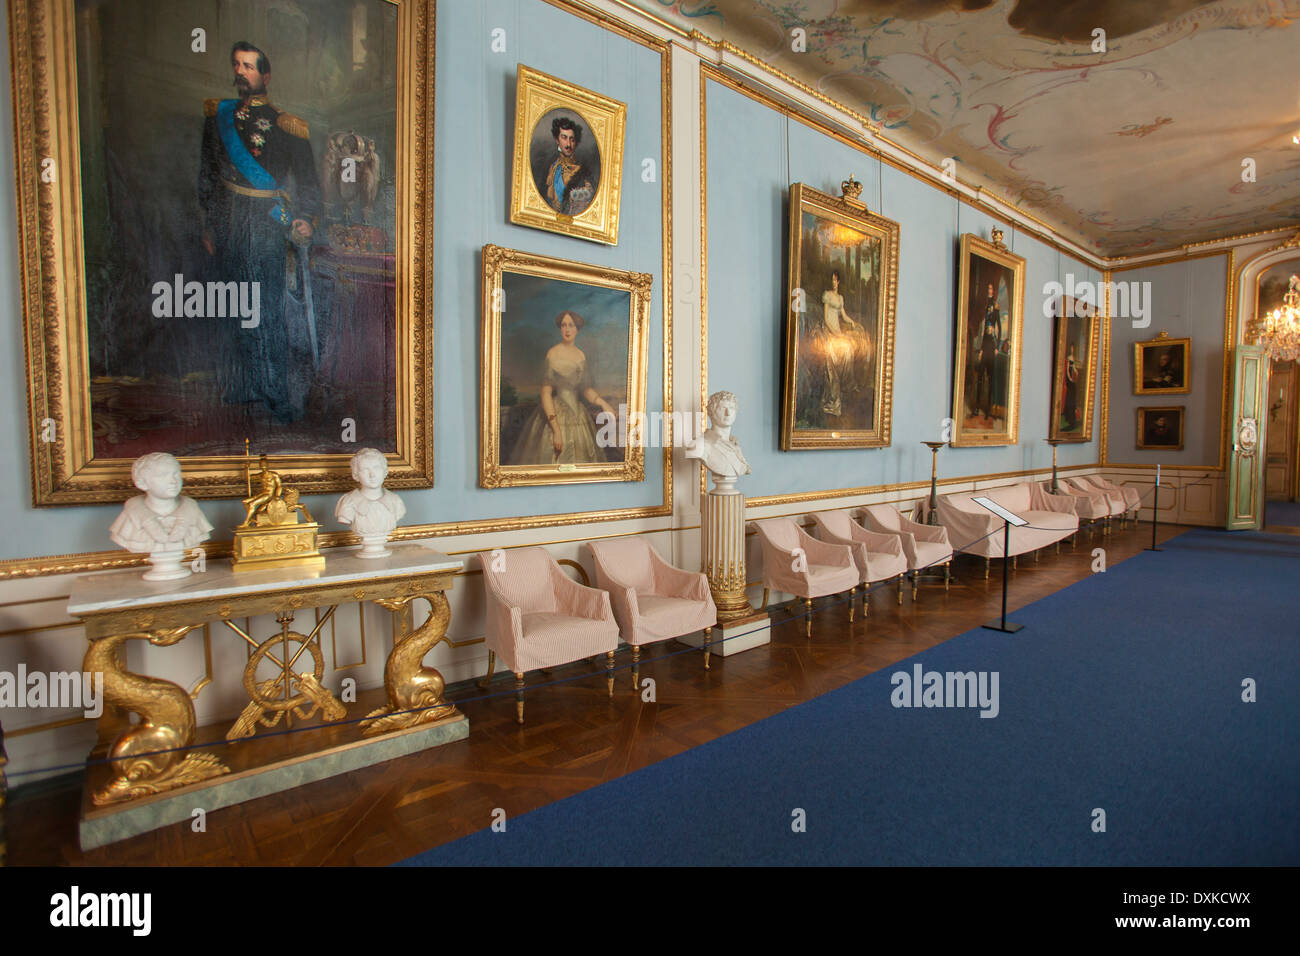 Sweden stockholm royal palace interiors